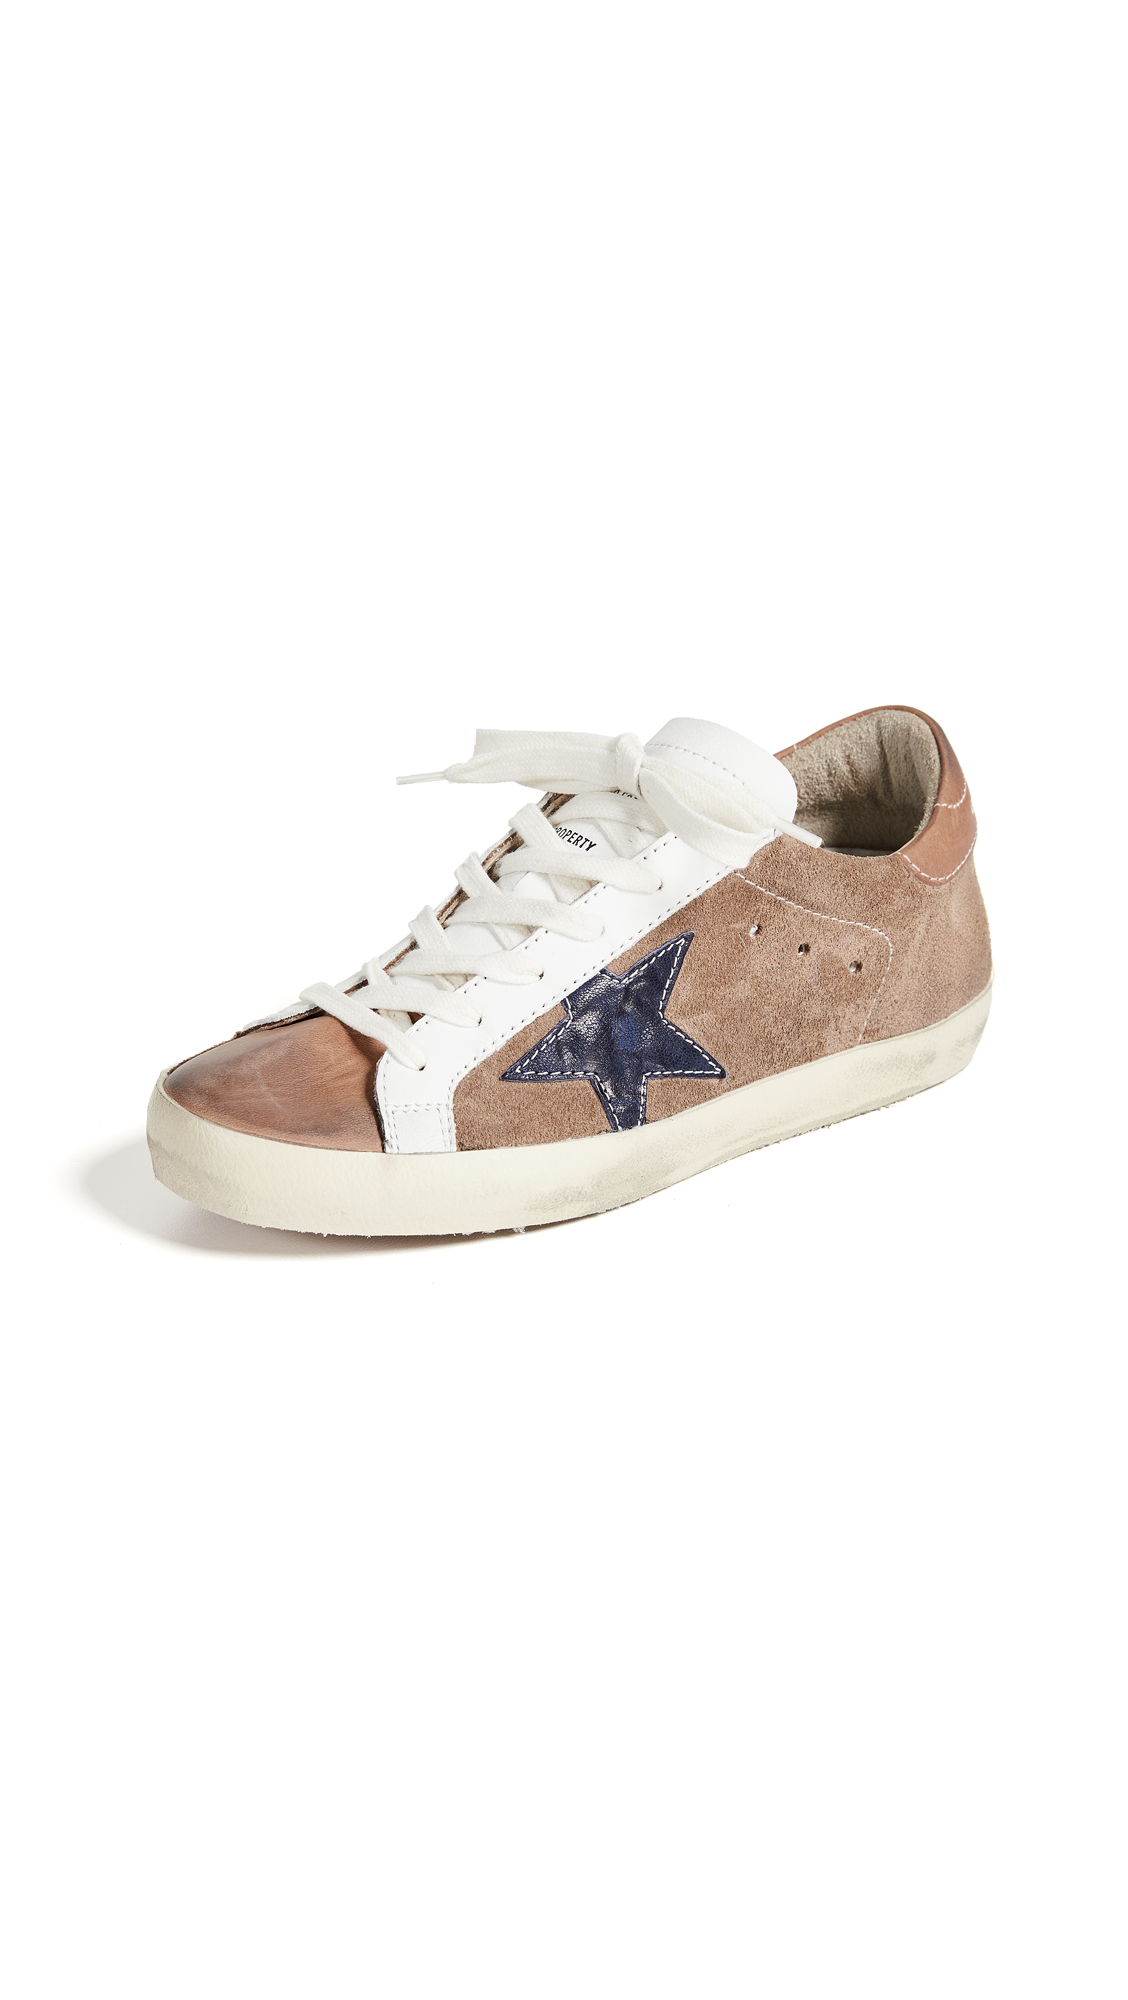 Golden Goose Superstar Sneakers - Tan/Indigo